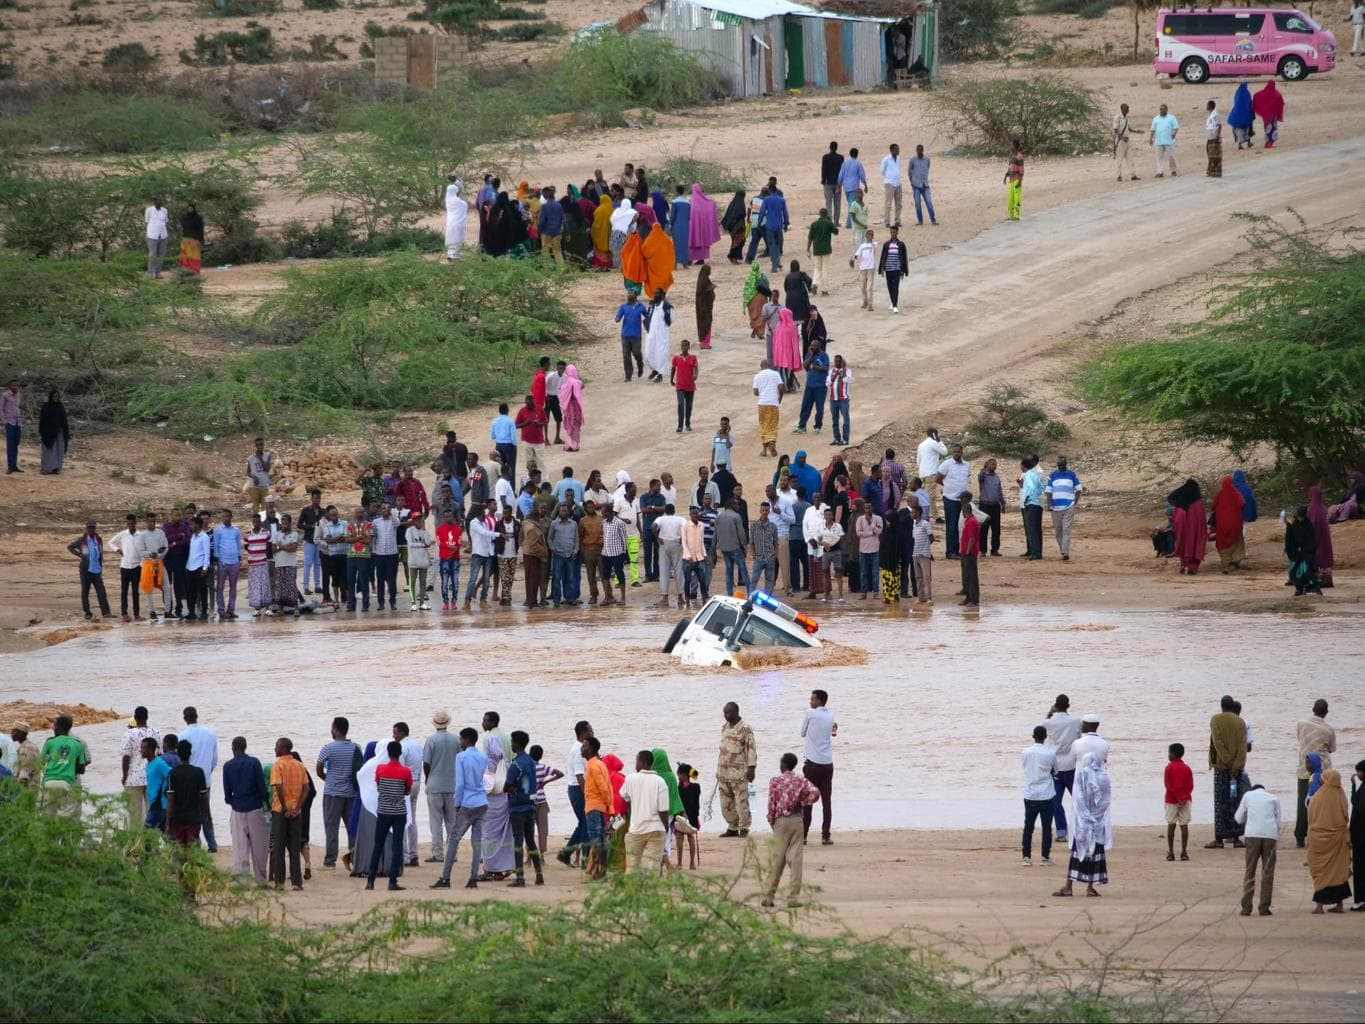 Flooded wadi cuts the road Hargeisa-Berbera. An ambulance get stuck in the gushing water